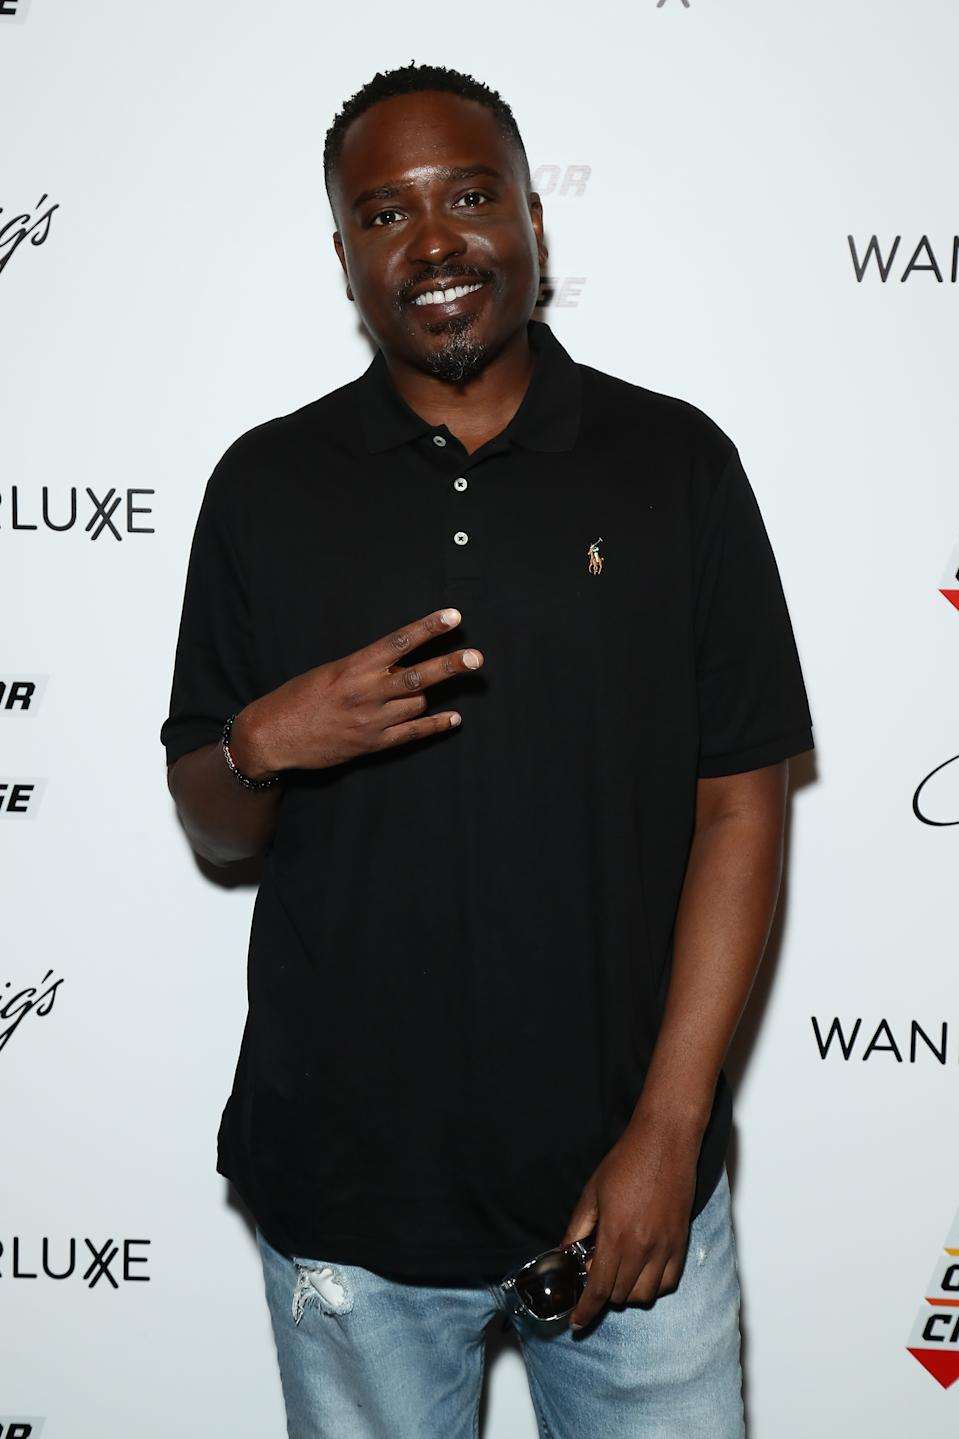 WEST HOLLYWOOD, CALIFORNIA - SEPTEMBER 21: Jason Weaver attends 2019 Wanderluxxe Pre-Emmy Diversity Luncheon at Craig's Restaurant on September 21, 2019 in West Hollywood, California. (Photo by Leon Bennett/Getty Images)